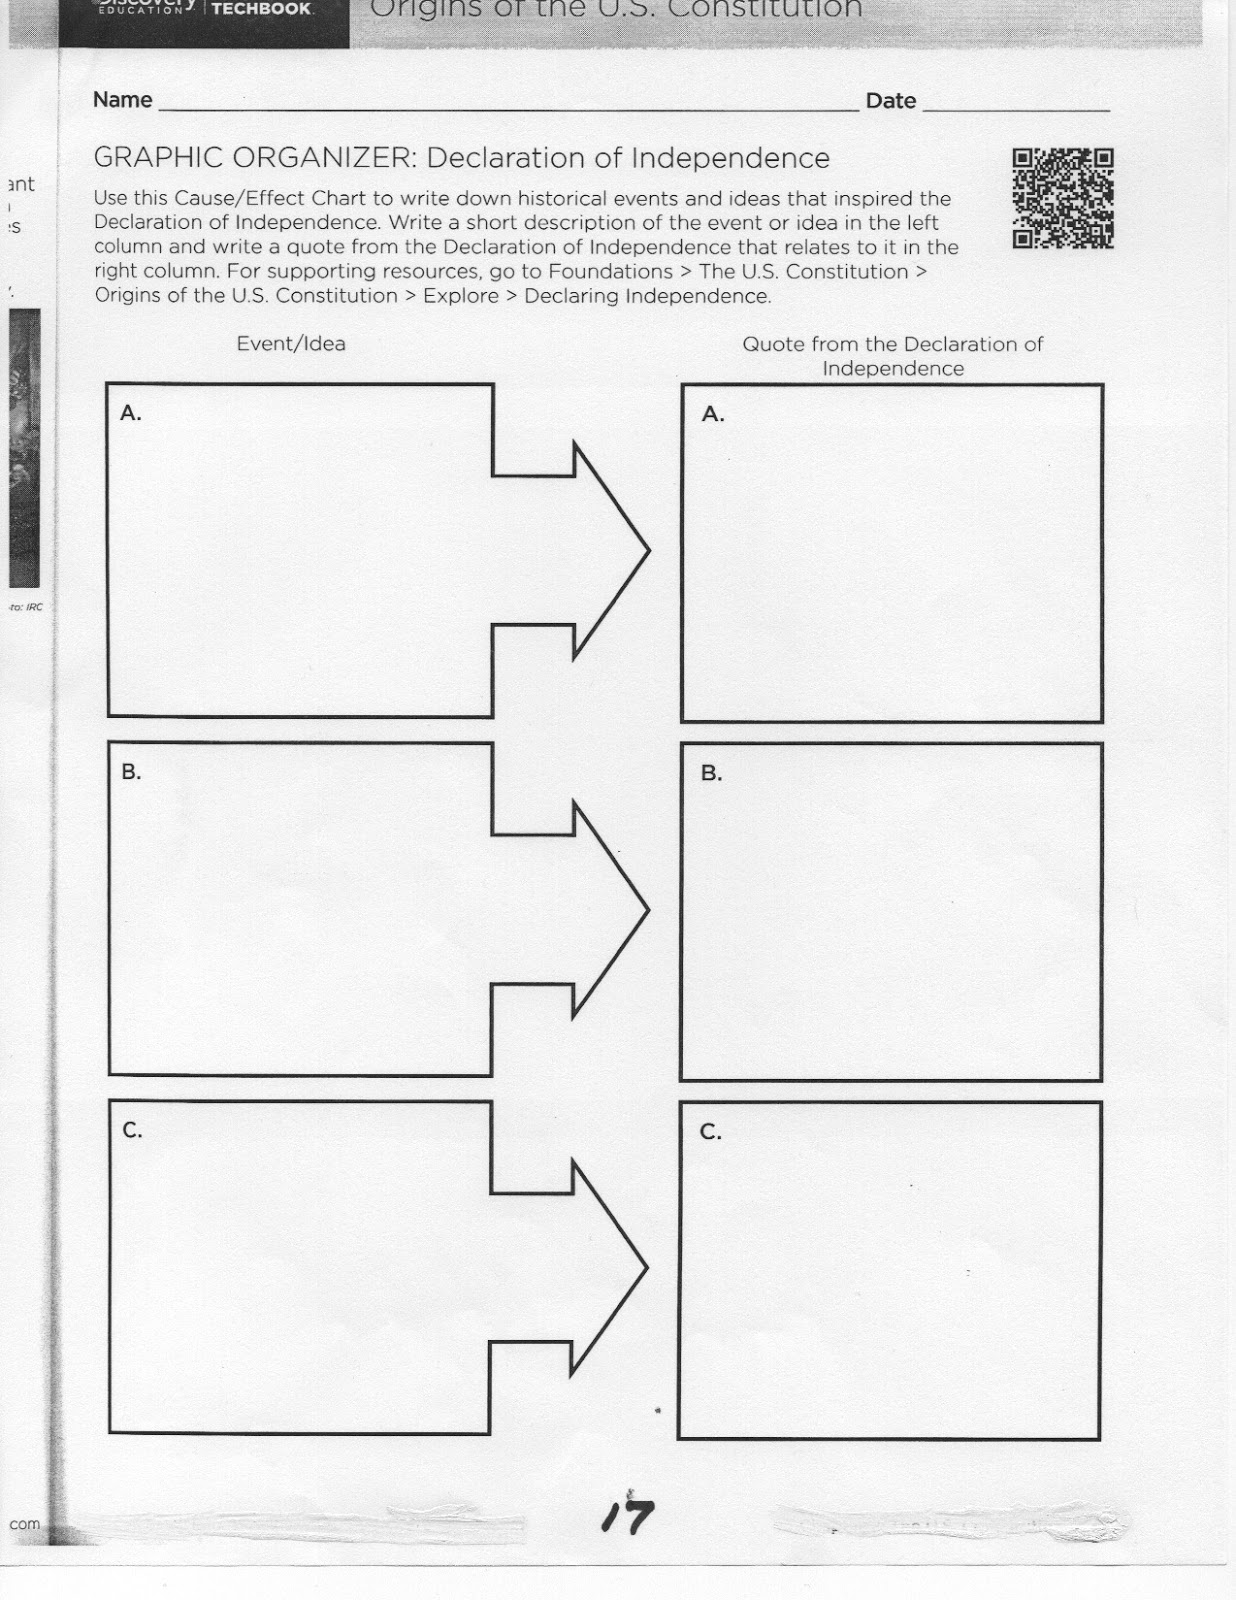 Coach Green S Class U3 Worksheets Origins Of The Constitution